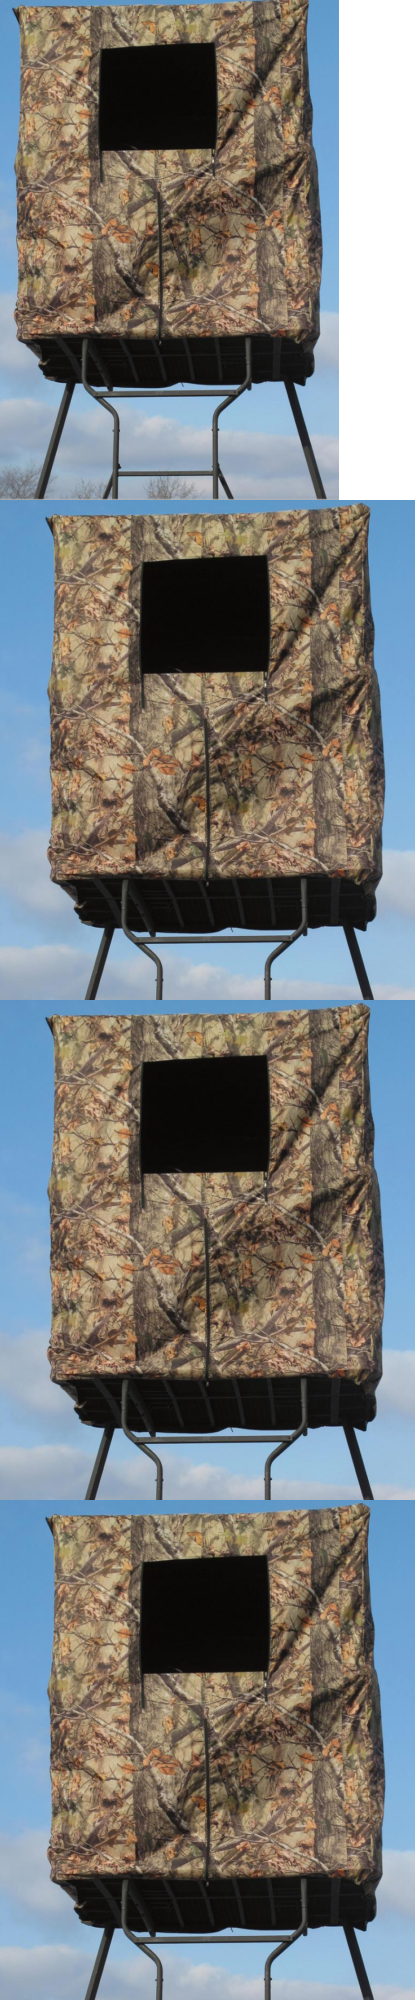 Hunting blind window ideas  blinds  universal  man tower stand camo deer turkey hunting